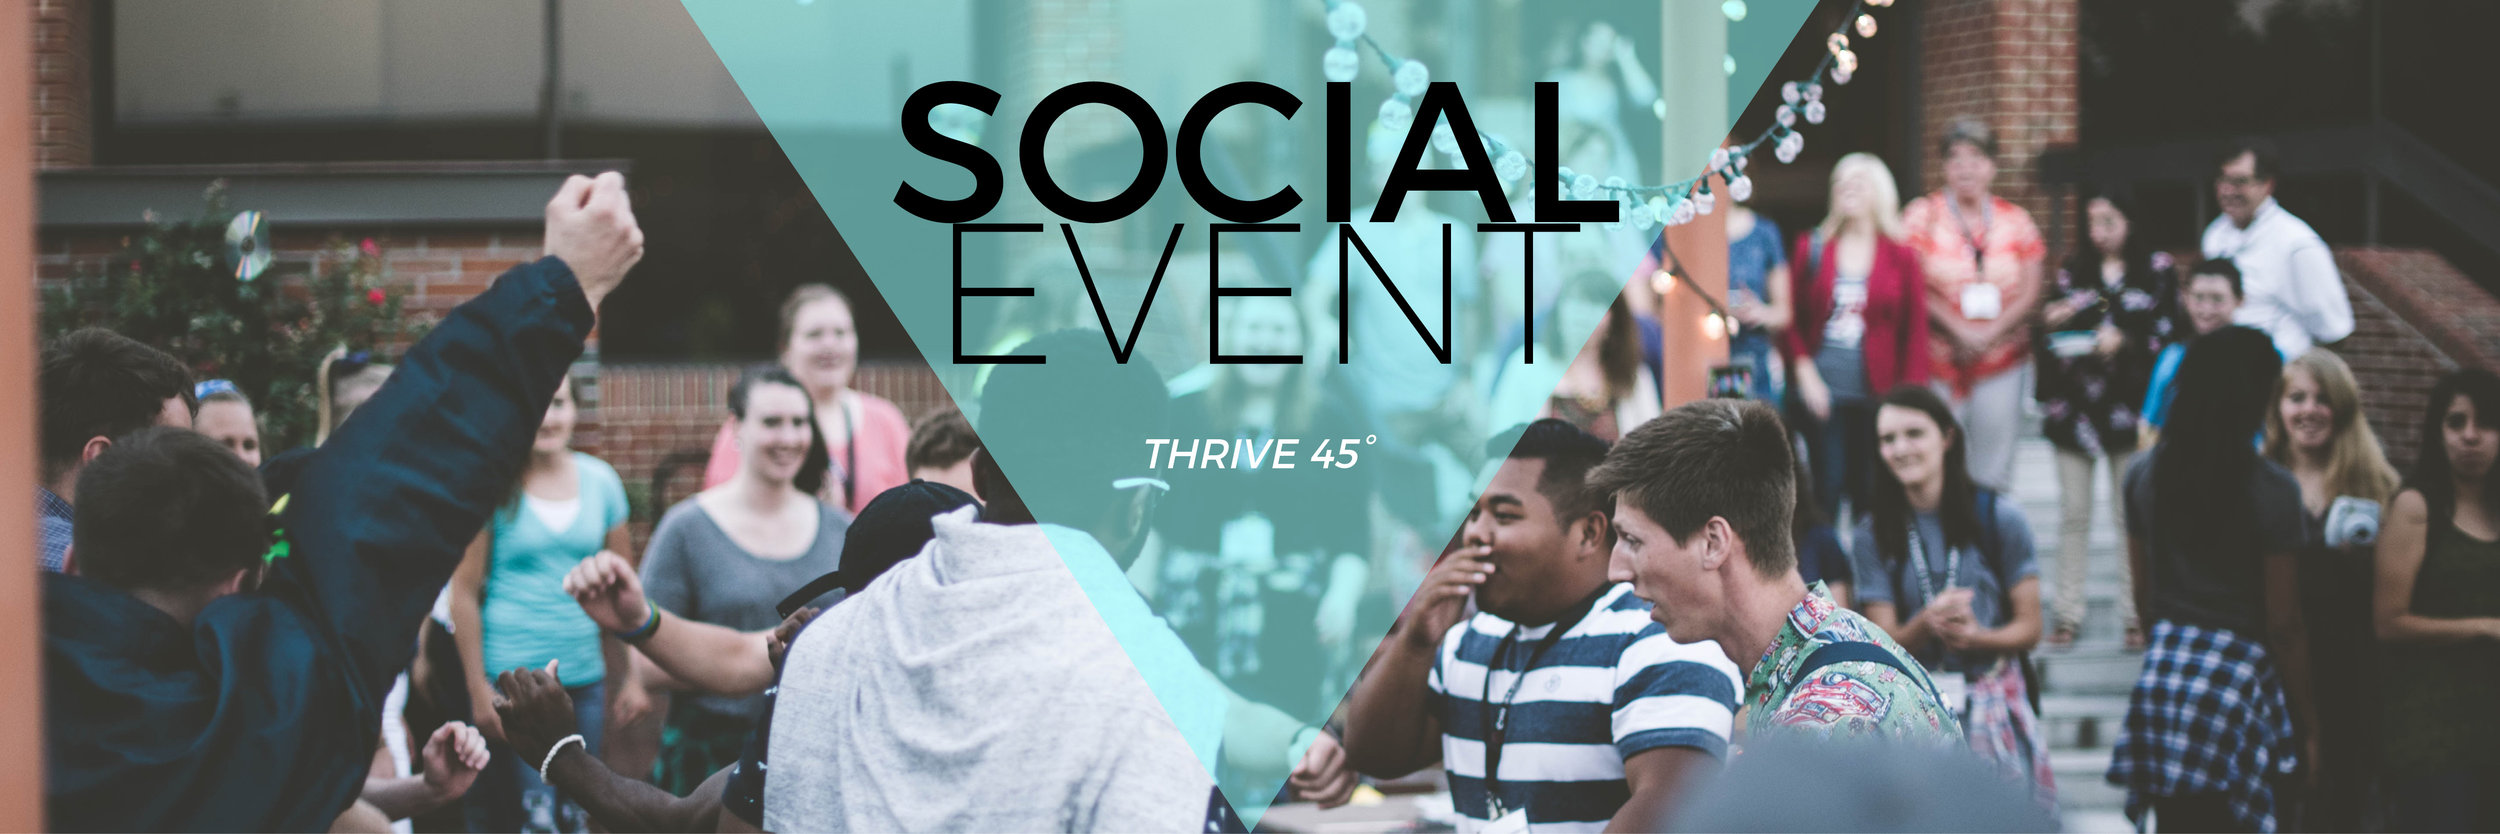 T45-Social Event Graphic.jpg